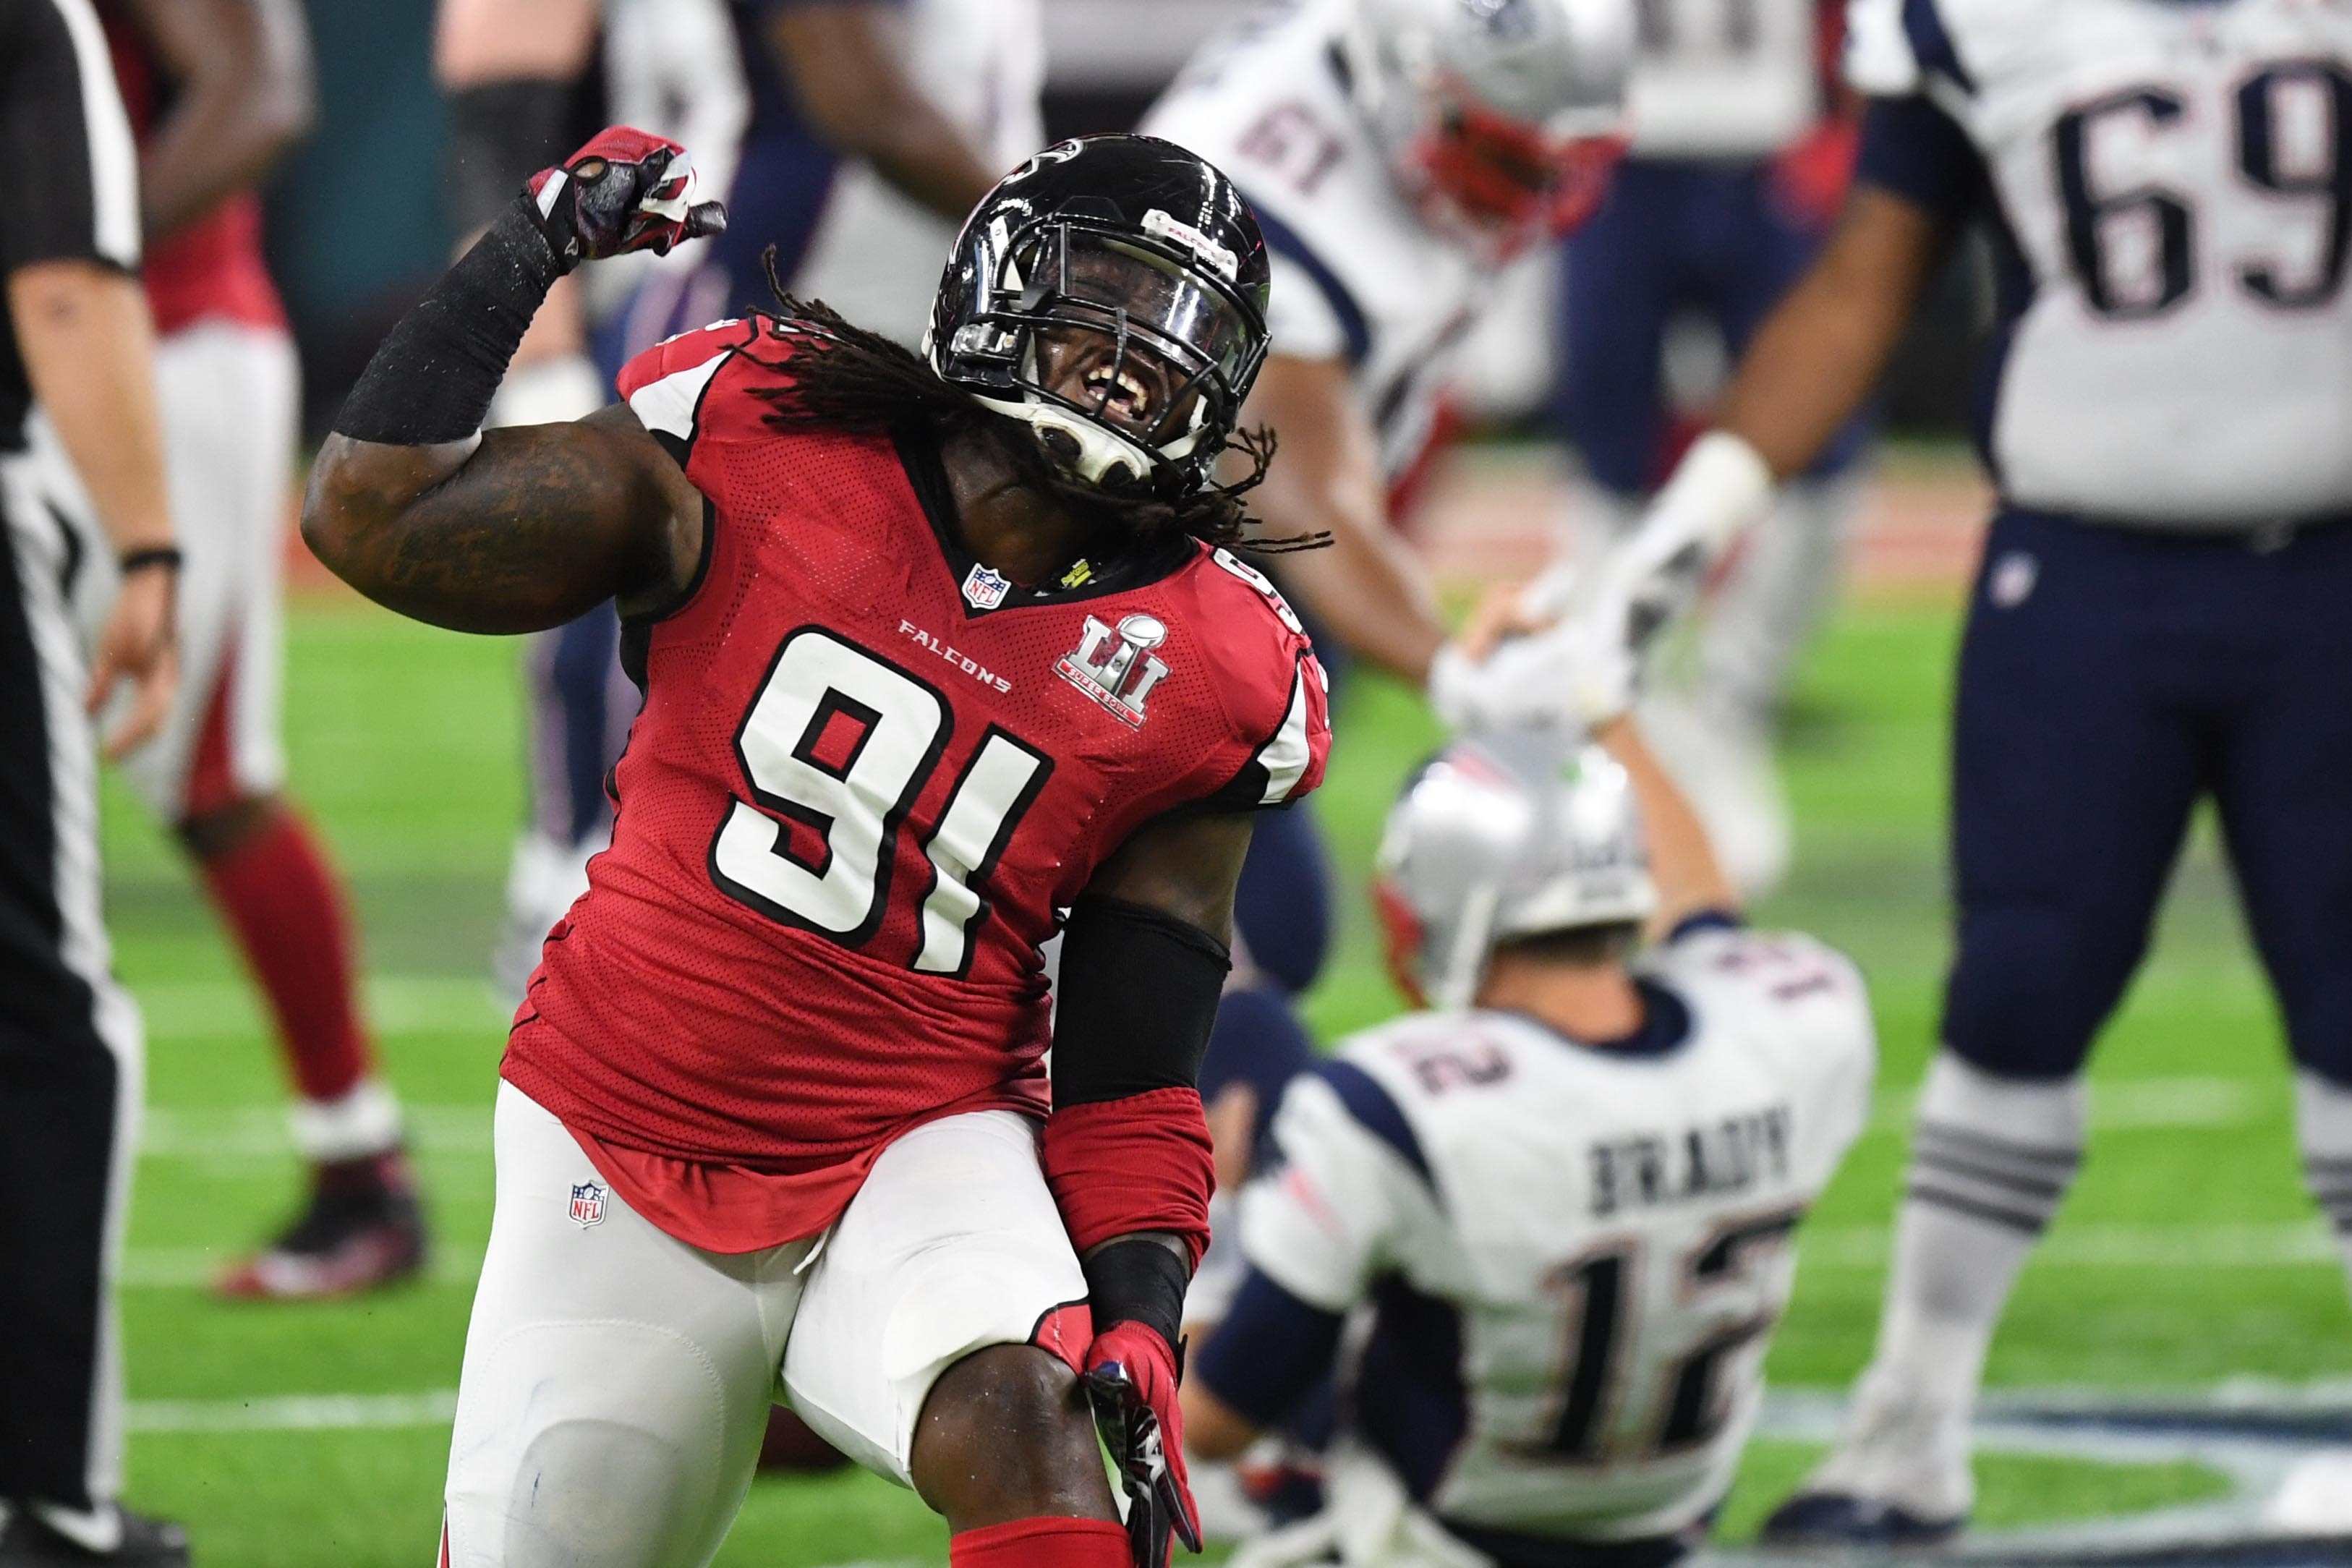 9861375-nfl-super-bowl-li-new-england-patriots-vs-atlanta-falcons